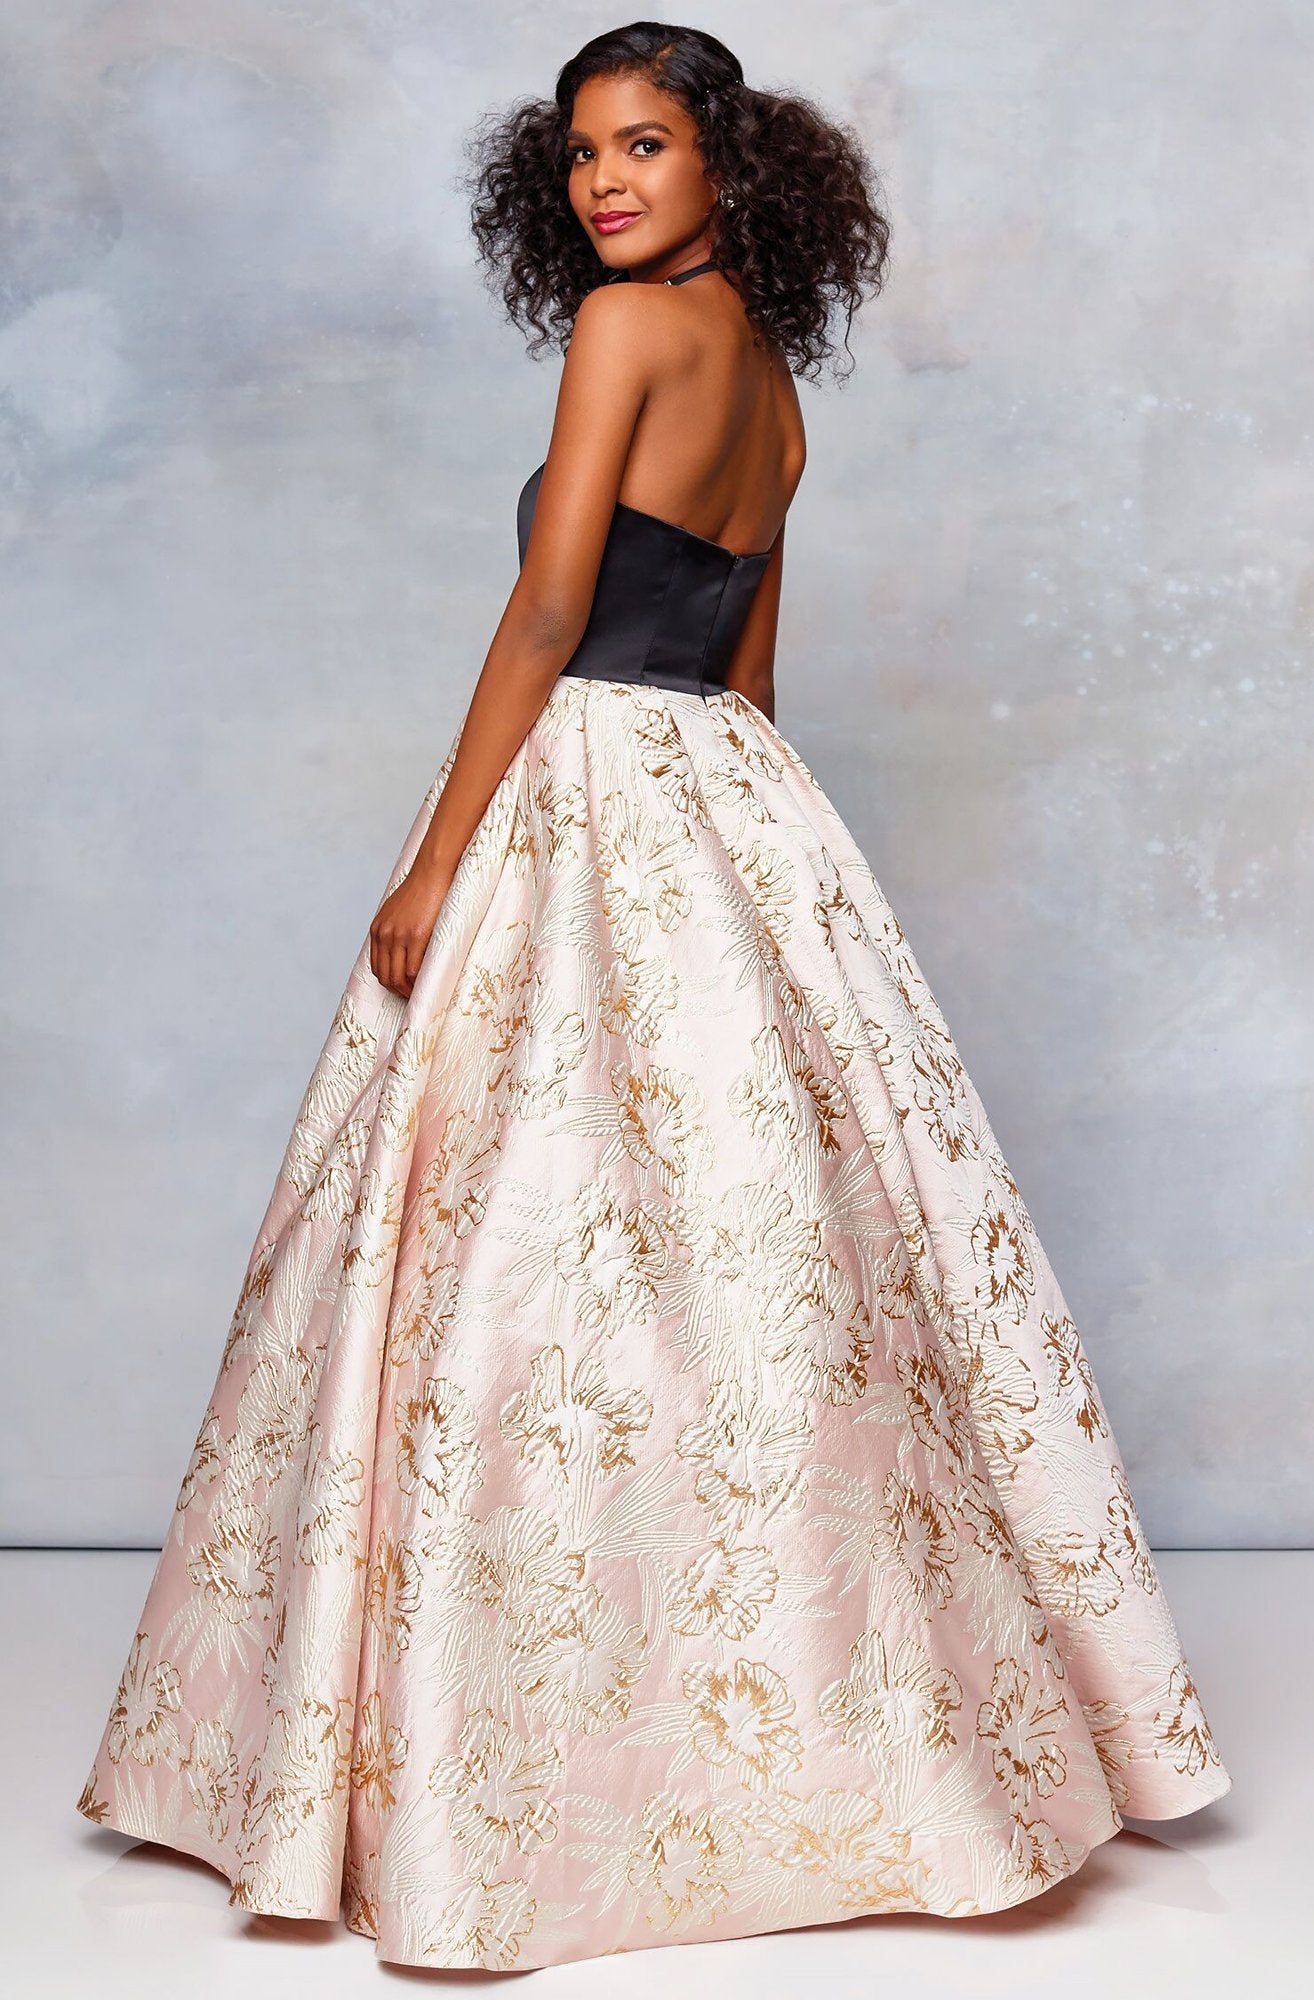 Clarisse - 5032 Two Tone Satin Sweetheart Brocade Ballgown in Black and Pink